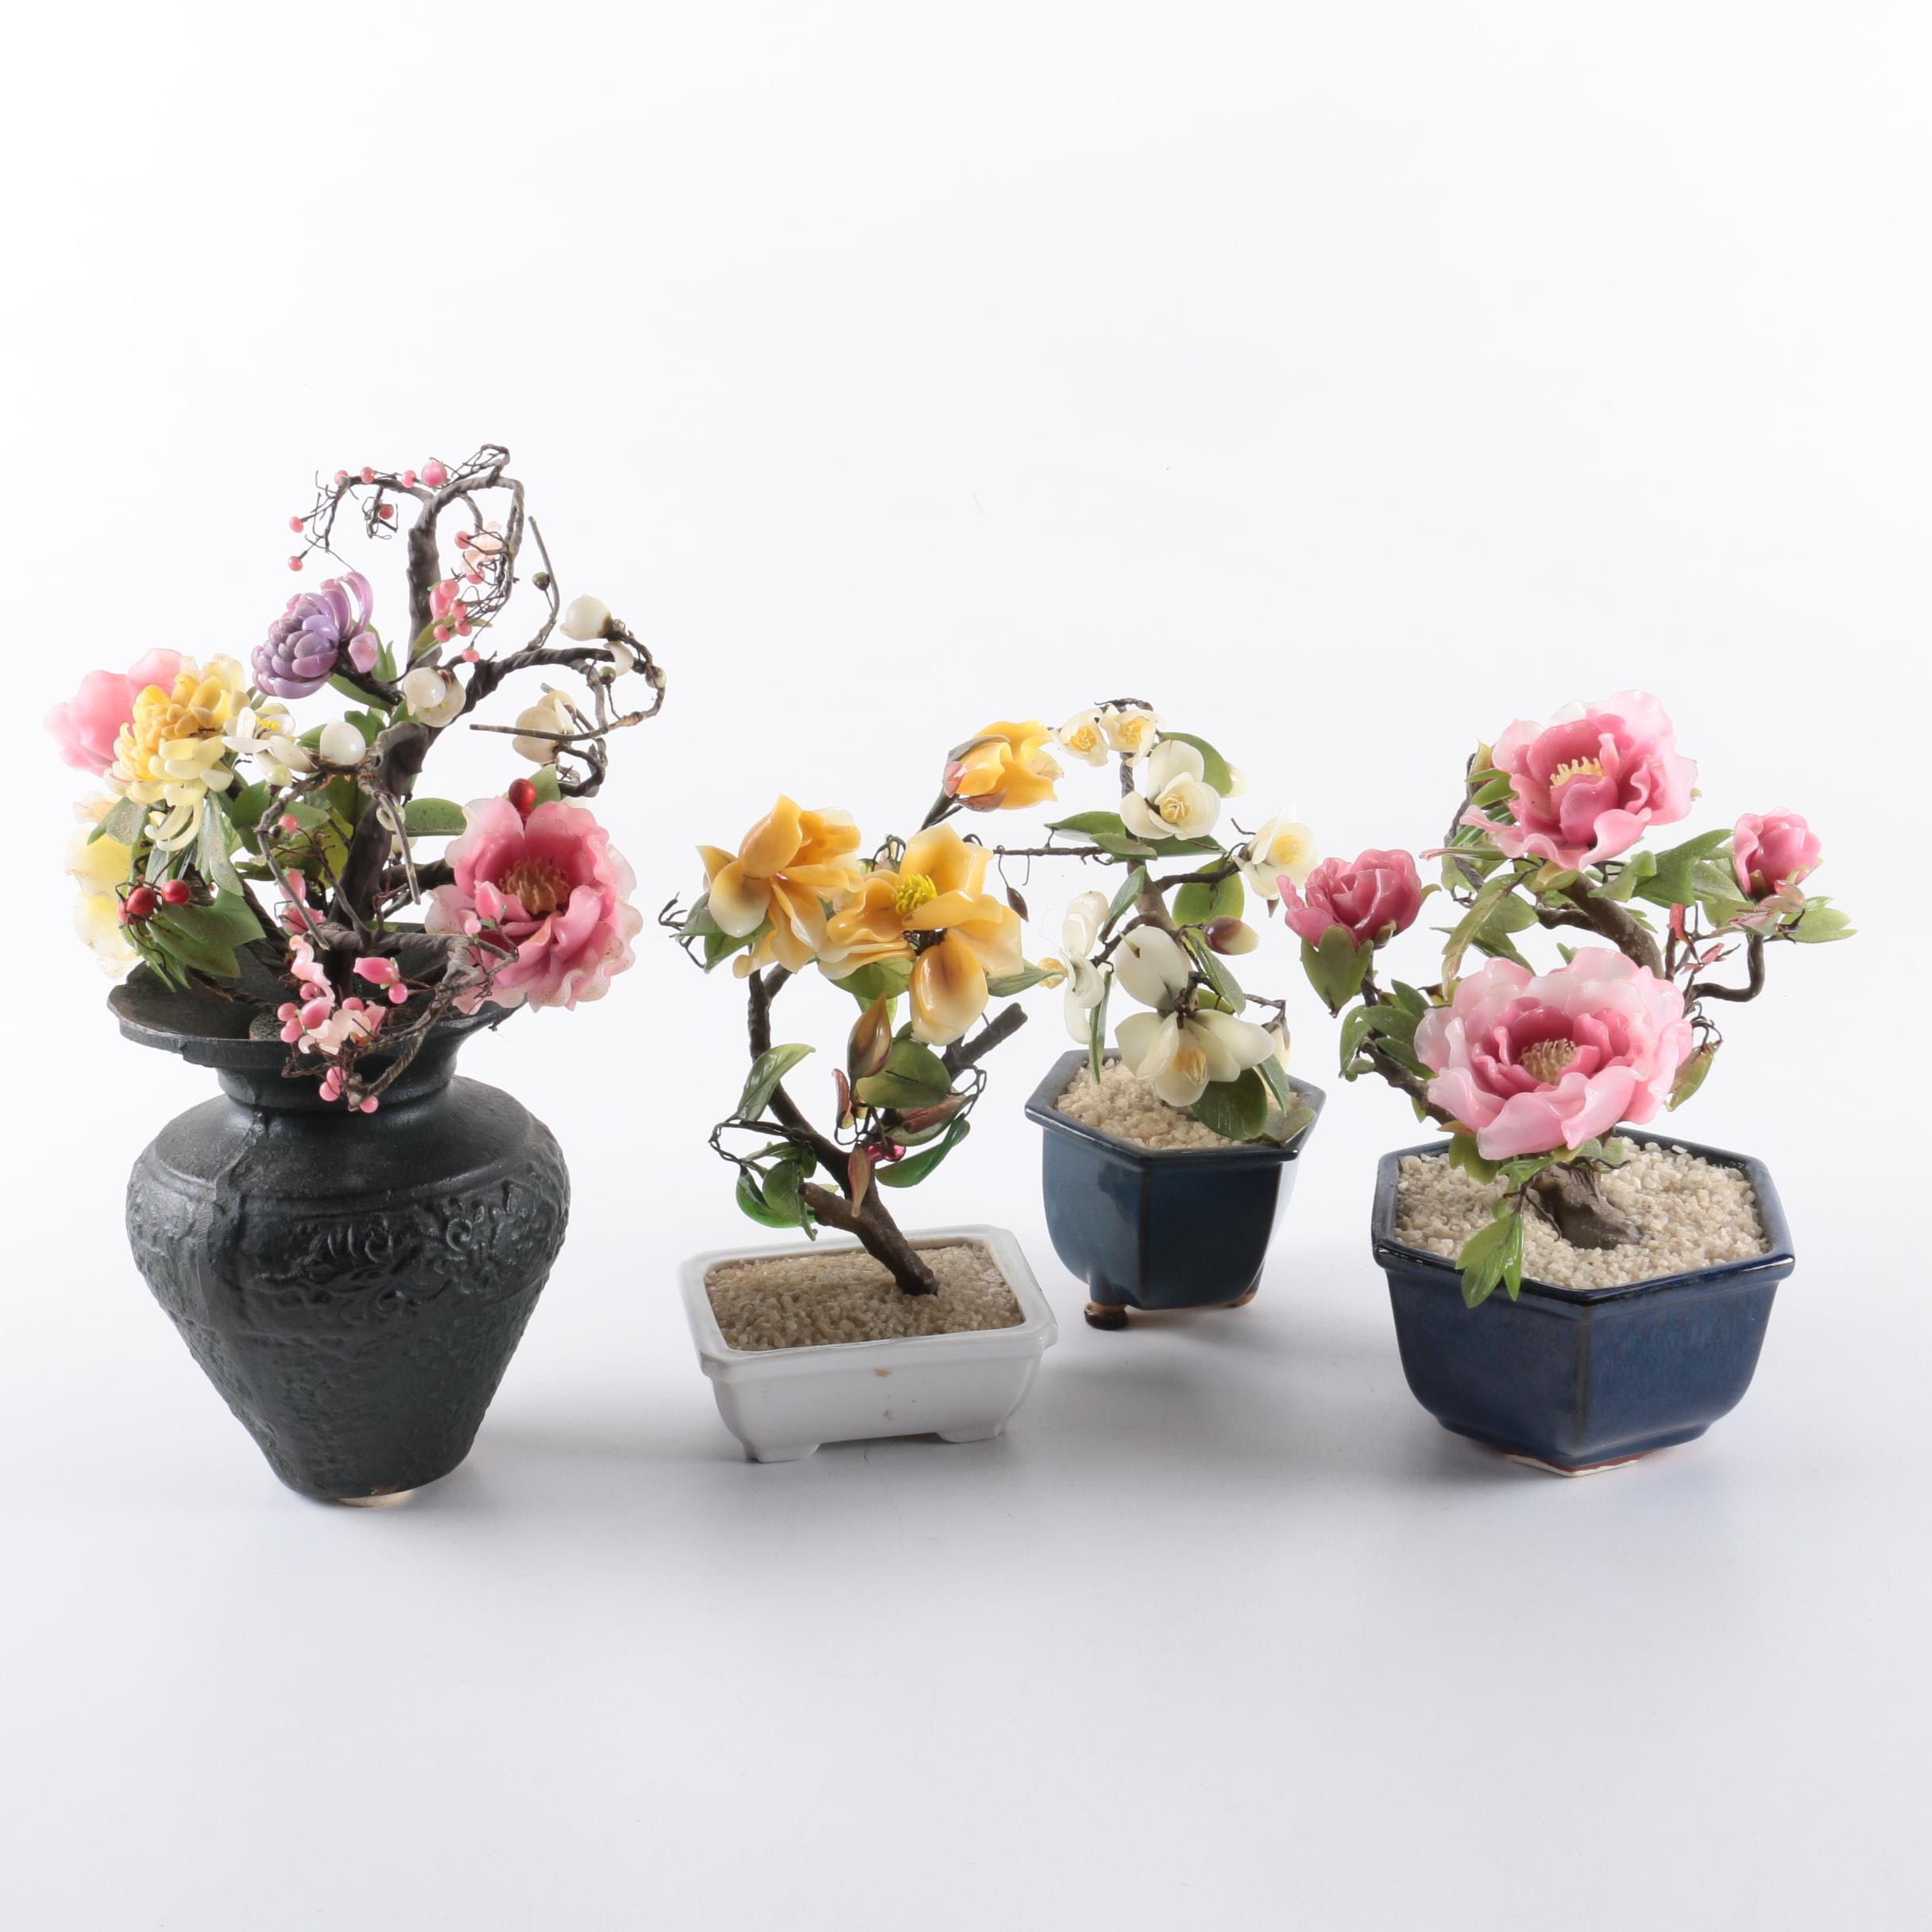 Bonsai Style Glass Flower Figurines with Planters